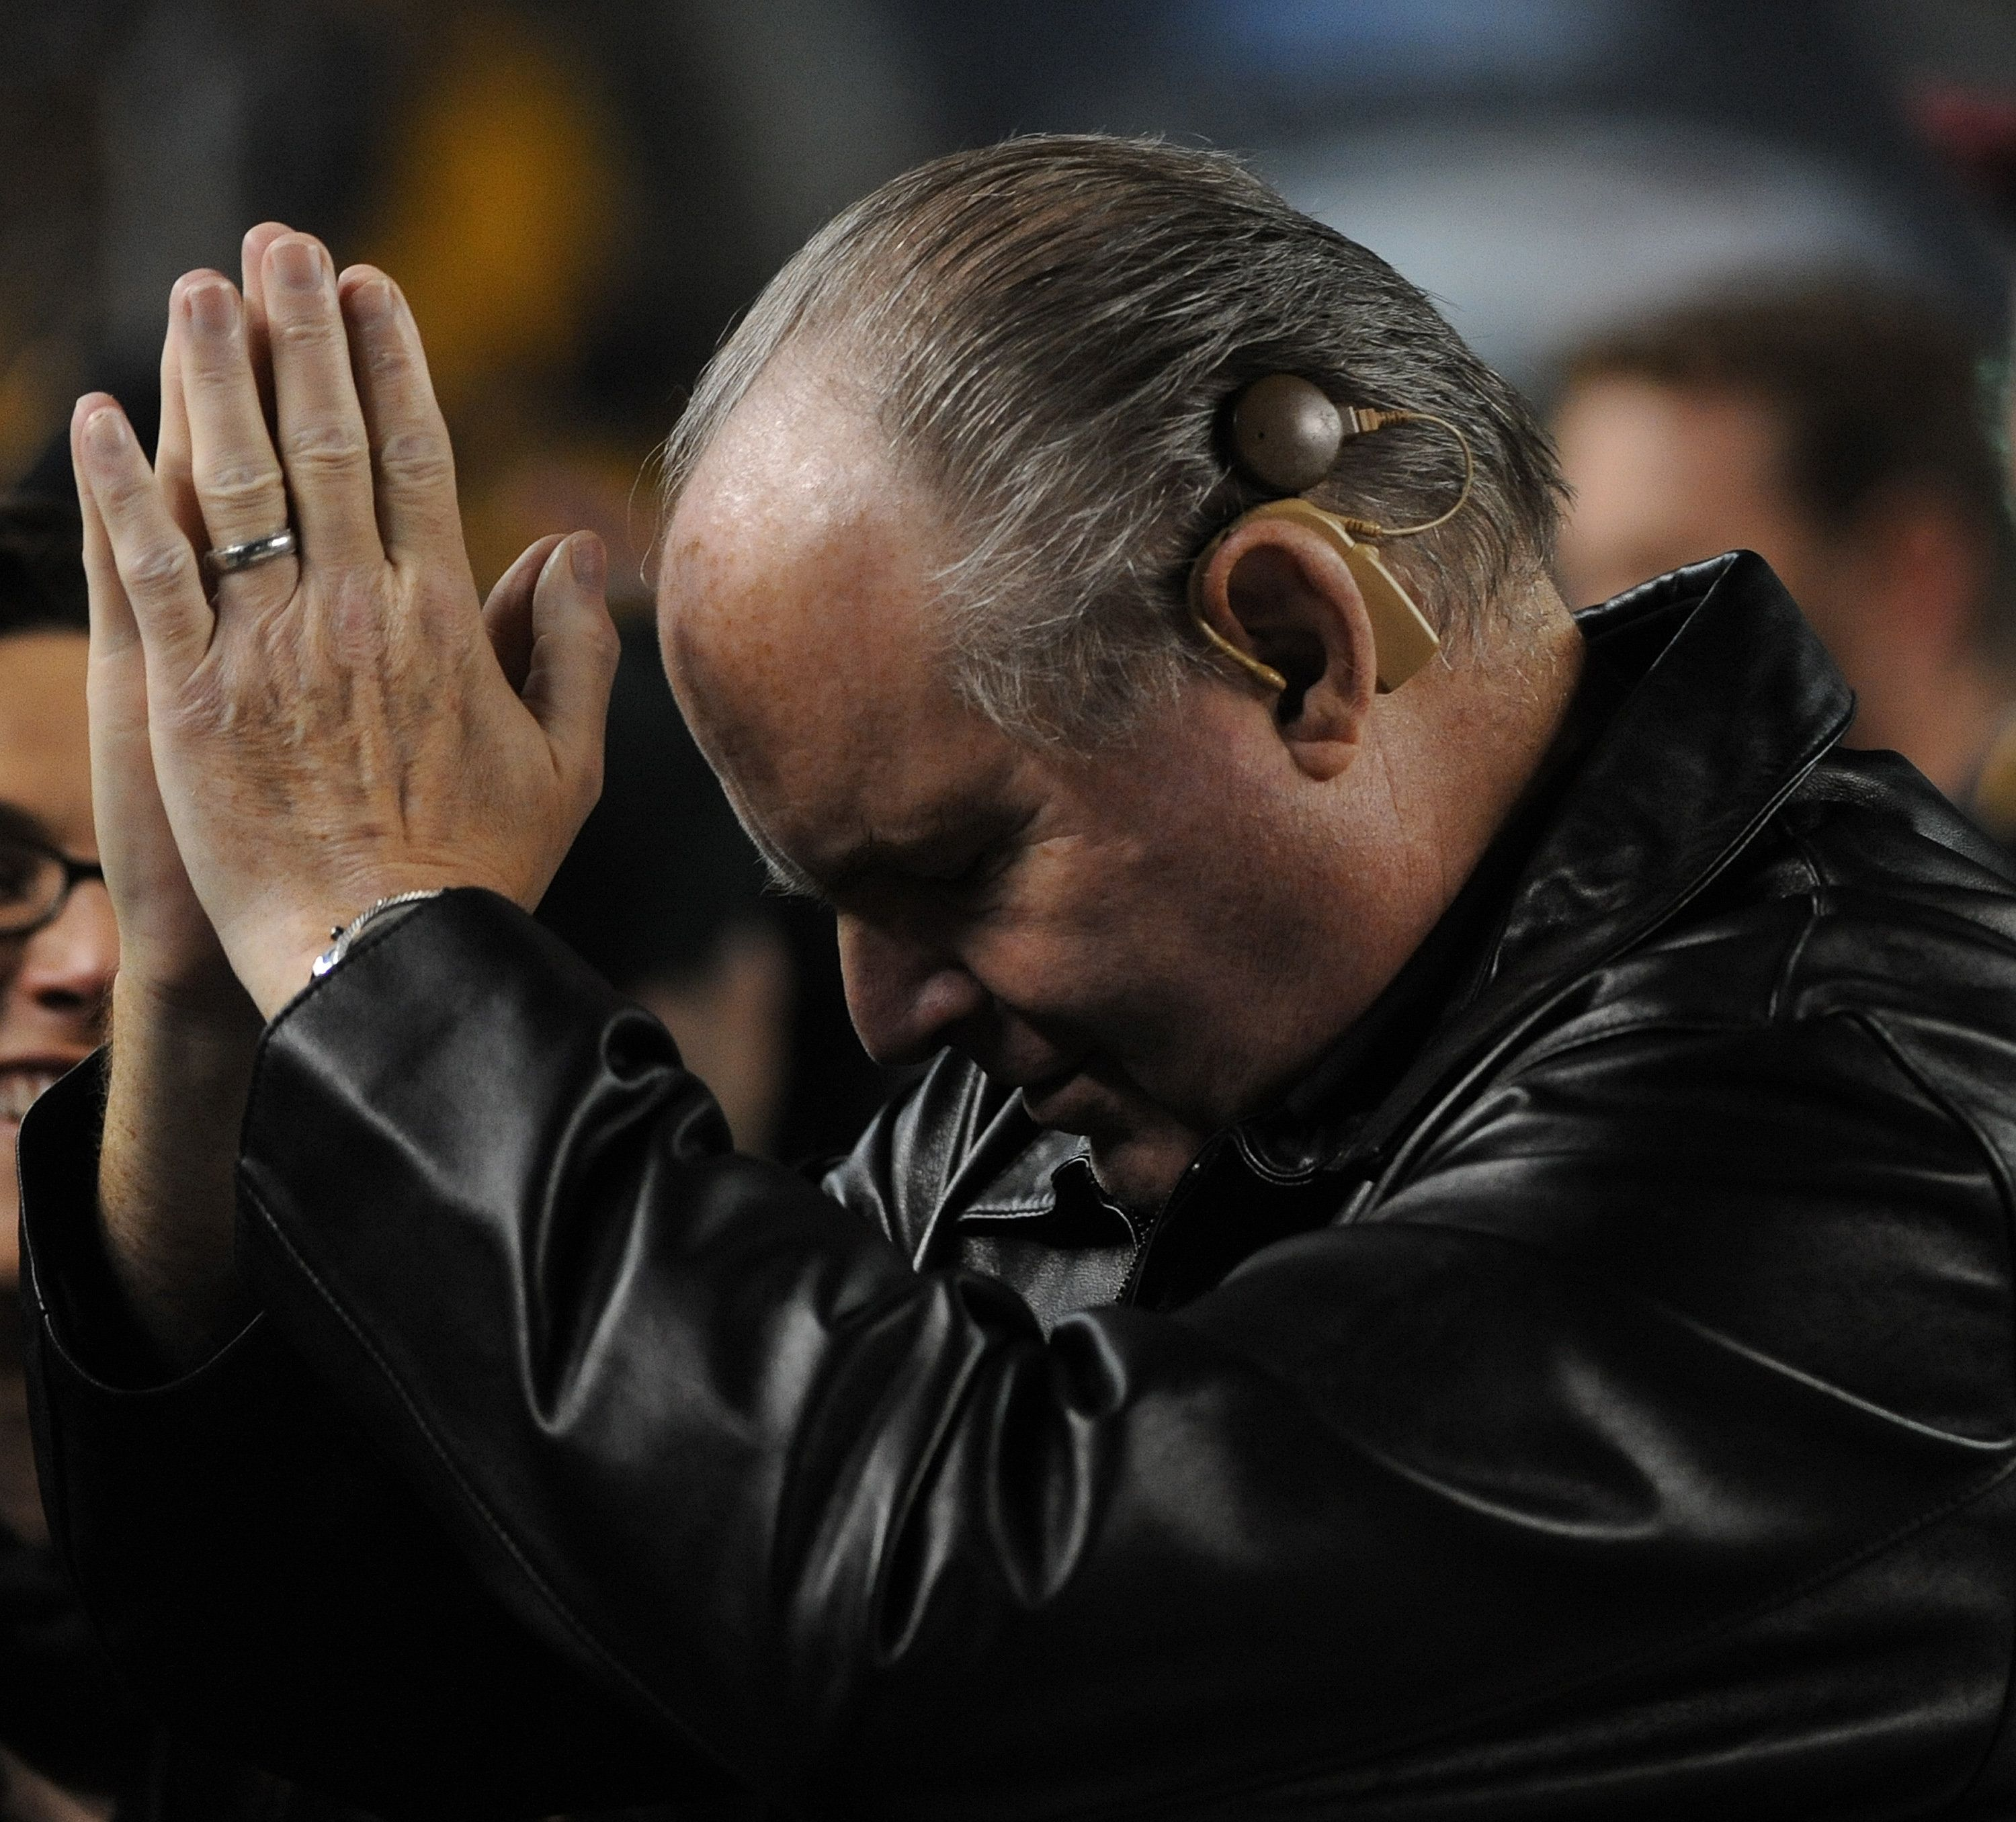 PITTSBURGH, PA - NOVEMBER 6:  Radio talk show host and political commentator Rush Limbaugh acknowledges cheers from fans as he stands on the sideline before a National Football League game between the Baltimore Ravens and Pittsburgh Steelers at Heinz Field on November 6, 2011 in Pittsburgh, Pennsylvania.  The Ravens defeated the Steelers 23-20.  (Photo by George Gojkovich/Getty Images)